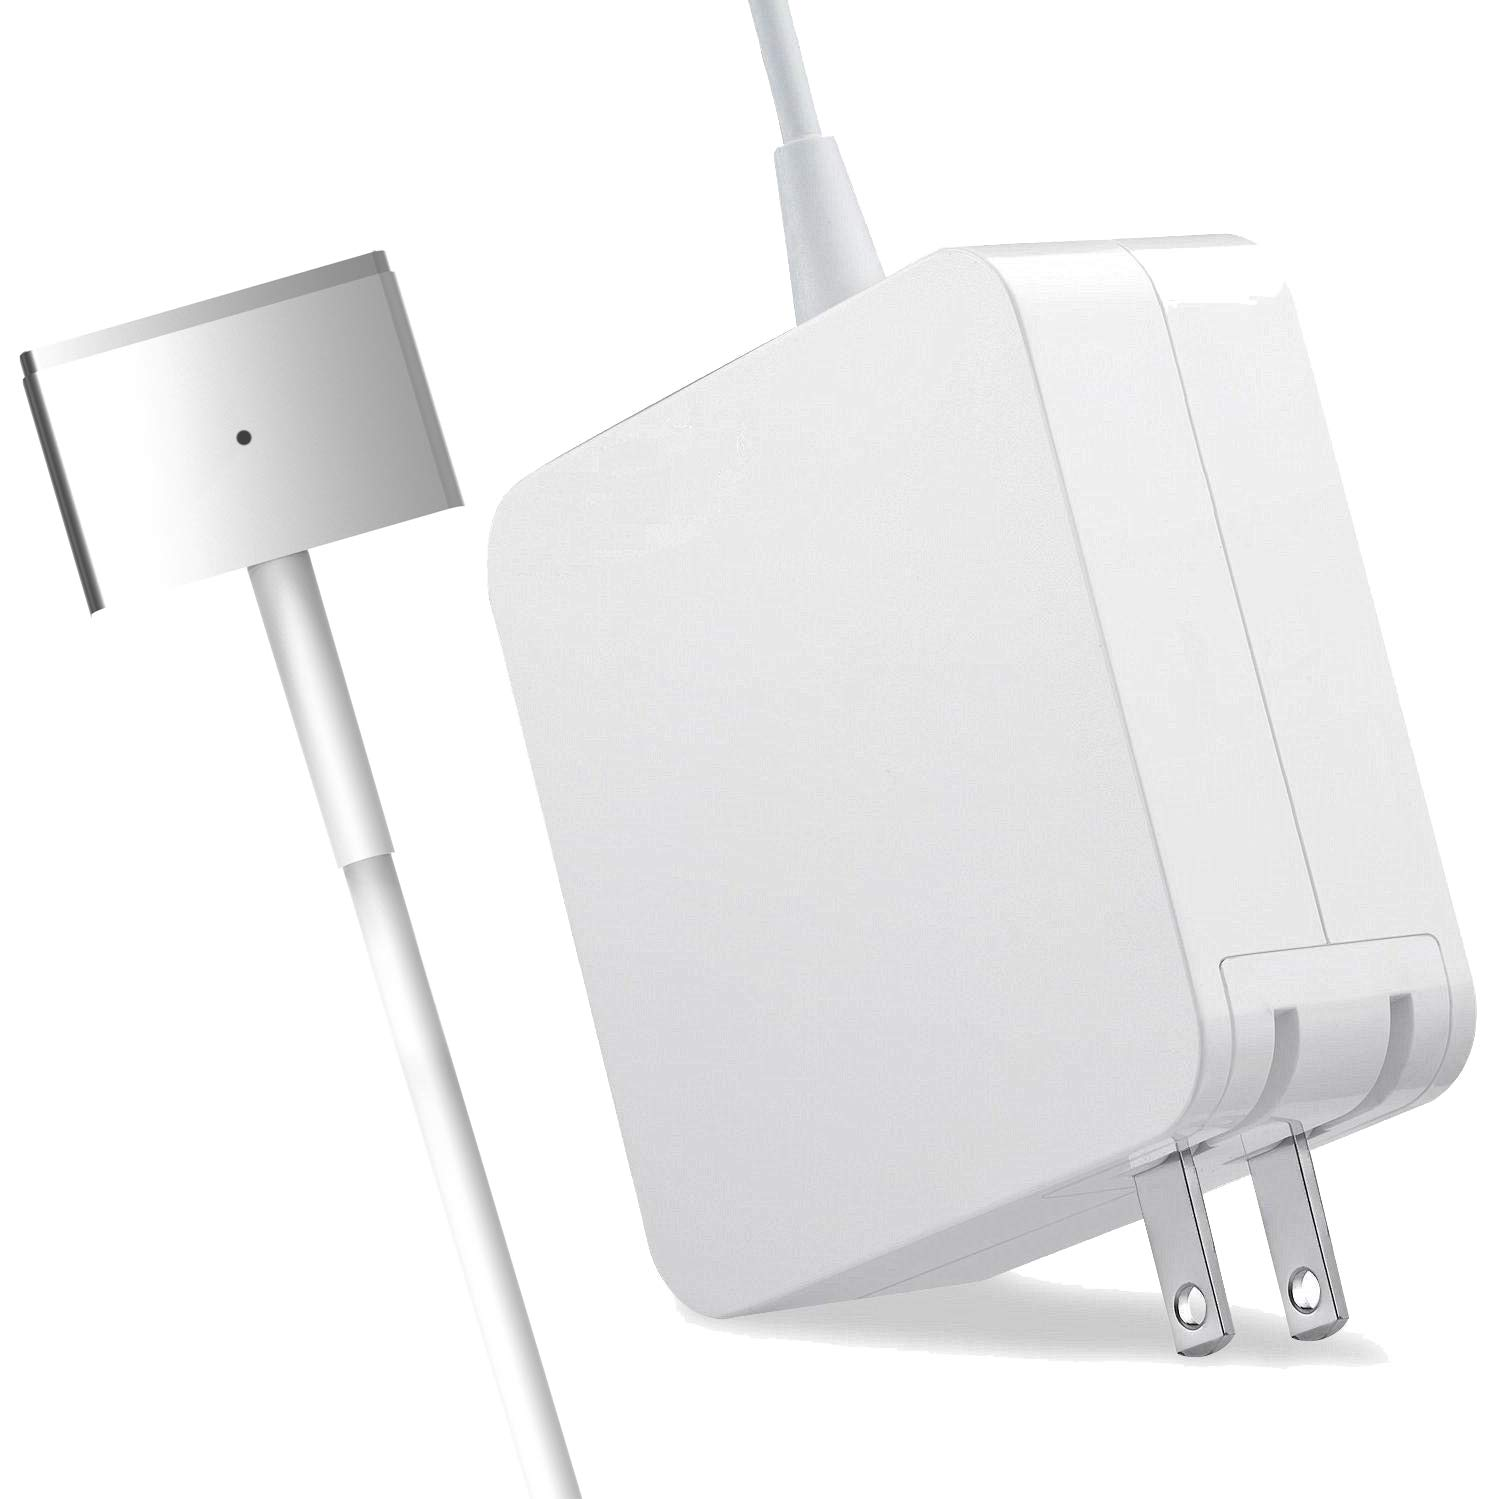 Sngg Mac Book Pro Charger, Replacement 60W Magsafe 2 Magnetic T-Tip Power Adapter Charger,Compatible Mac Book Pro/Air 13 Inch (Mid 2012 Later Model)